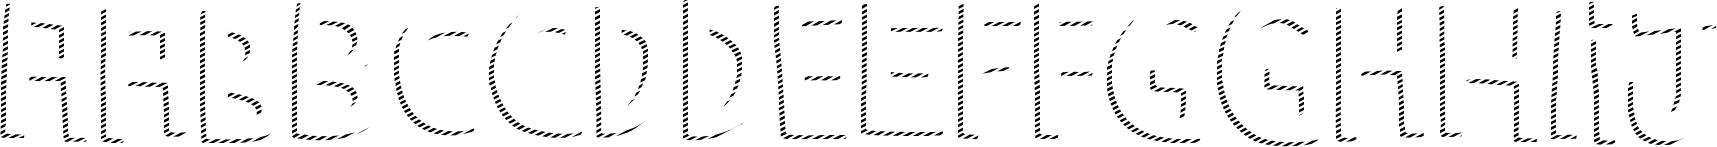 Marujo Shadow 2